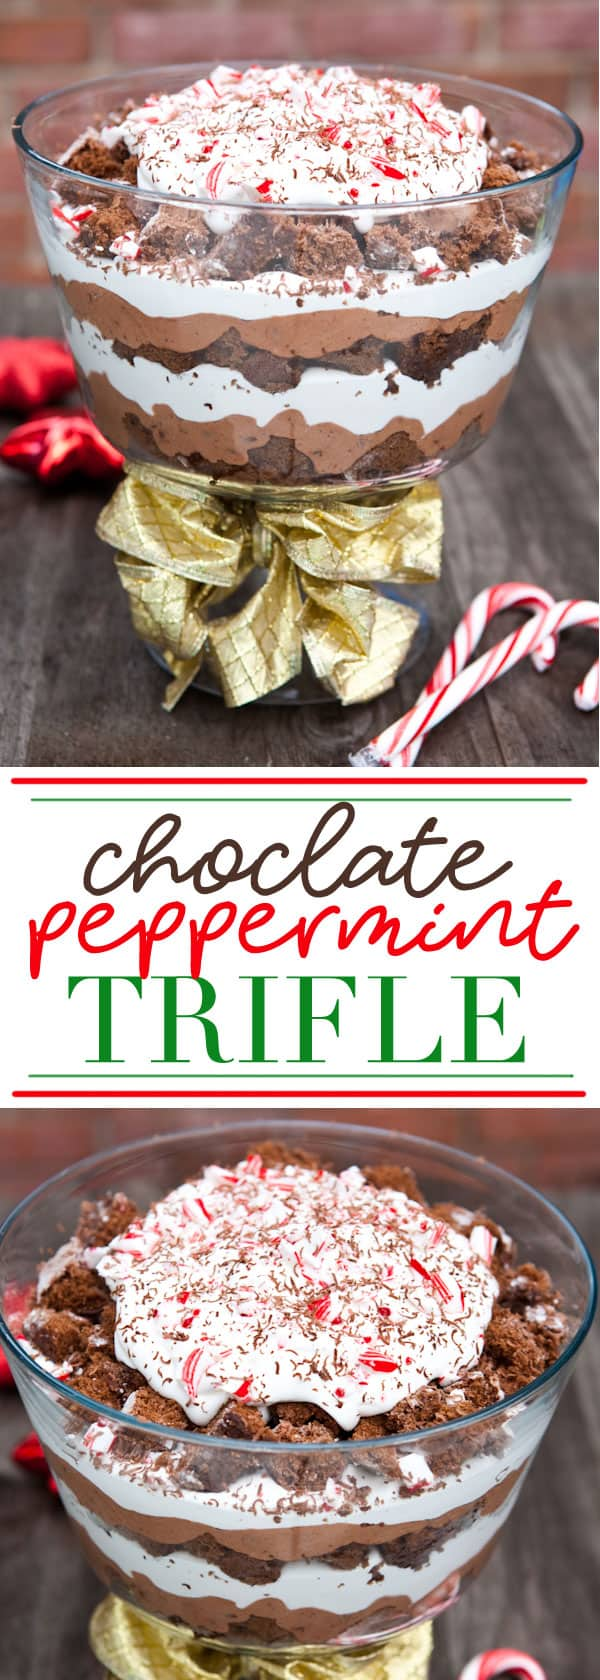 Chocolate Peppermint Trifle Recipe